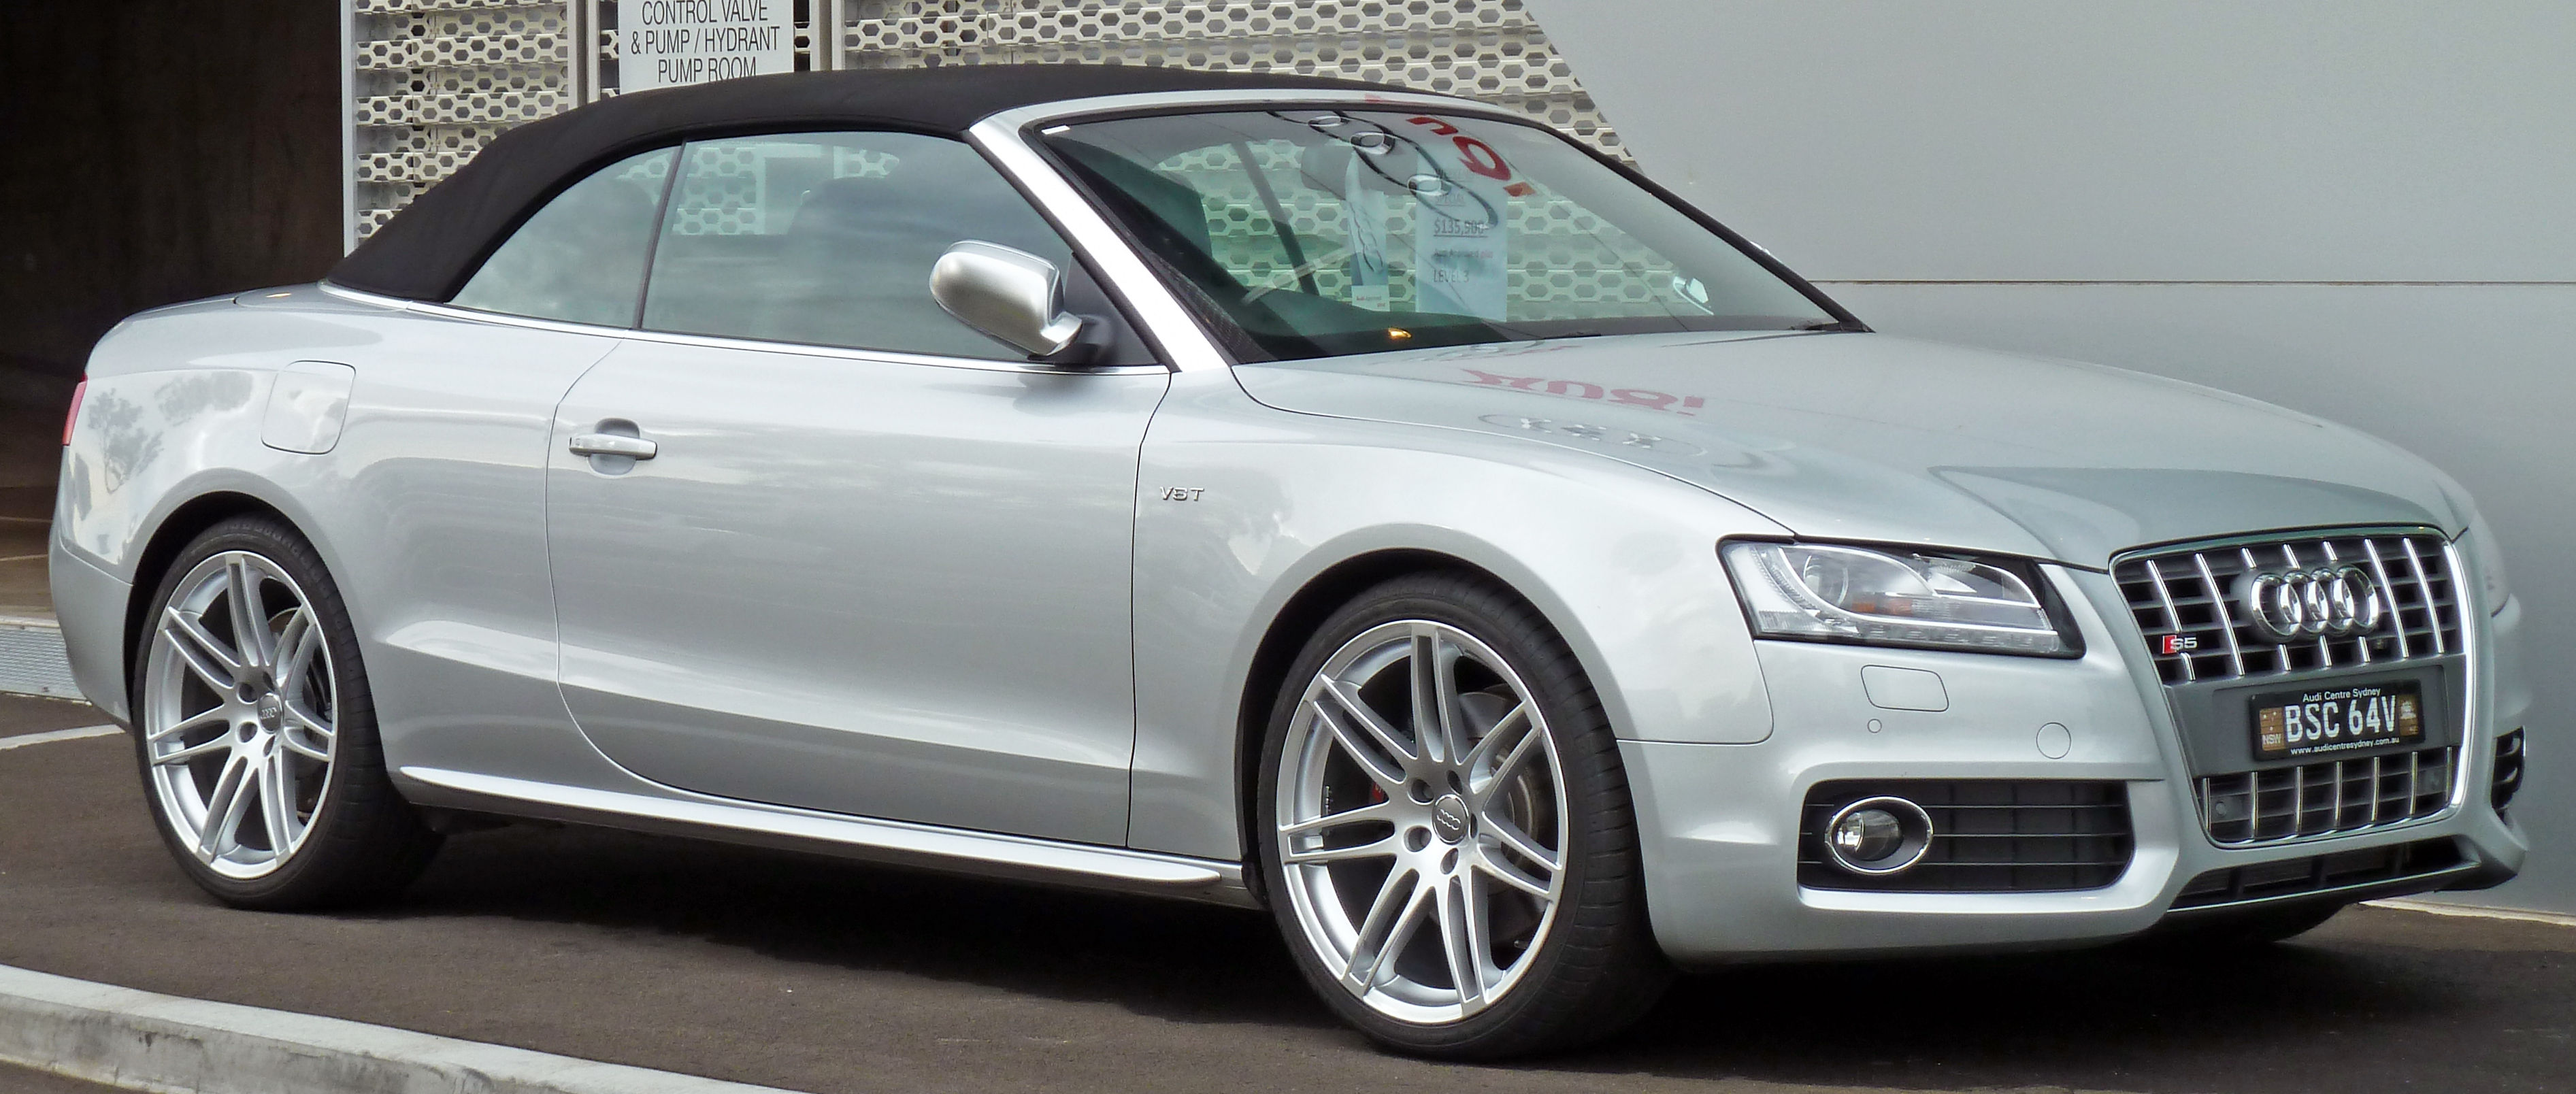 File 2009 Audi S5 8f7 My10 Convertible 2010 07 10 01